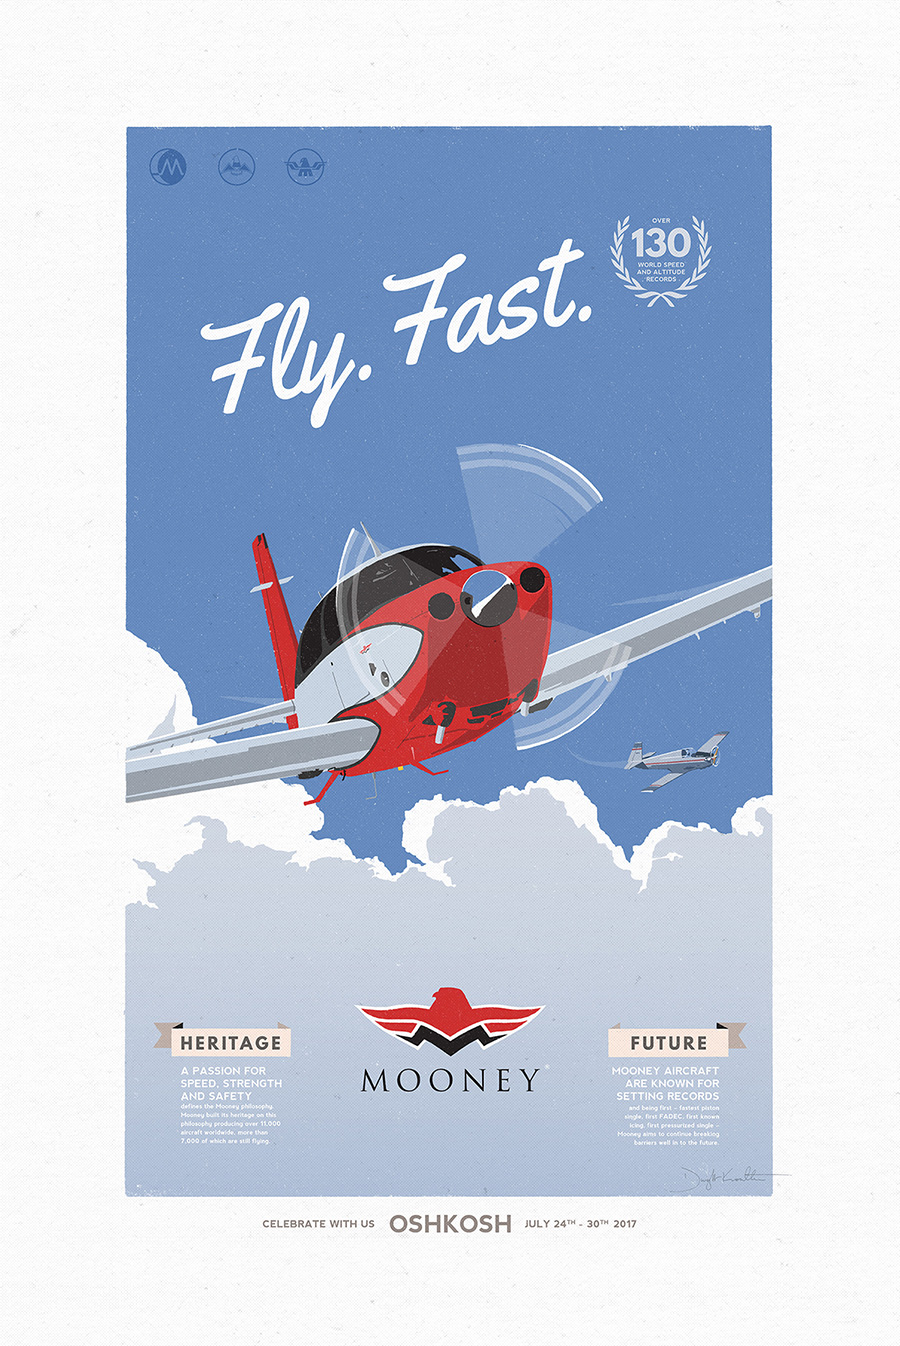 Mooney Aircraft poster illustration and design by Dwight Knowlton